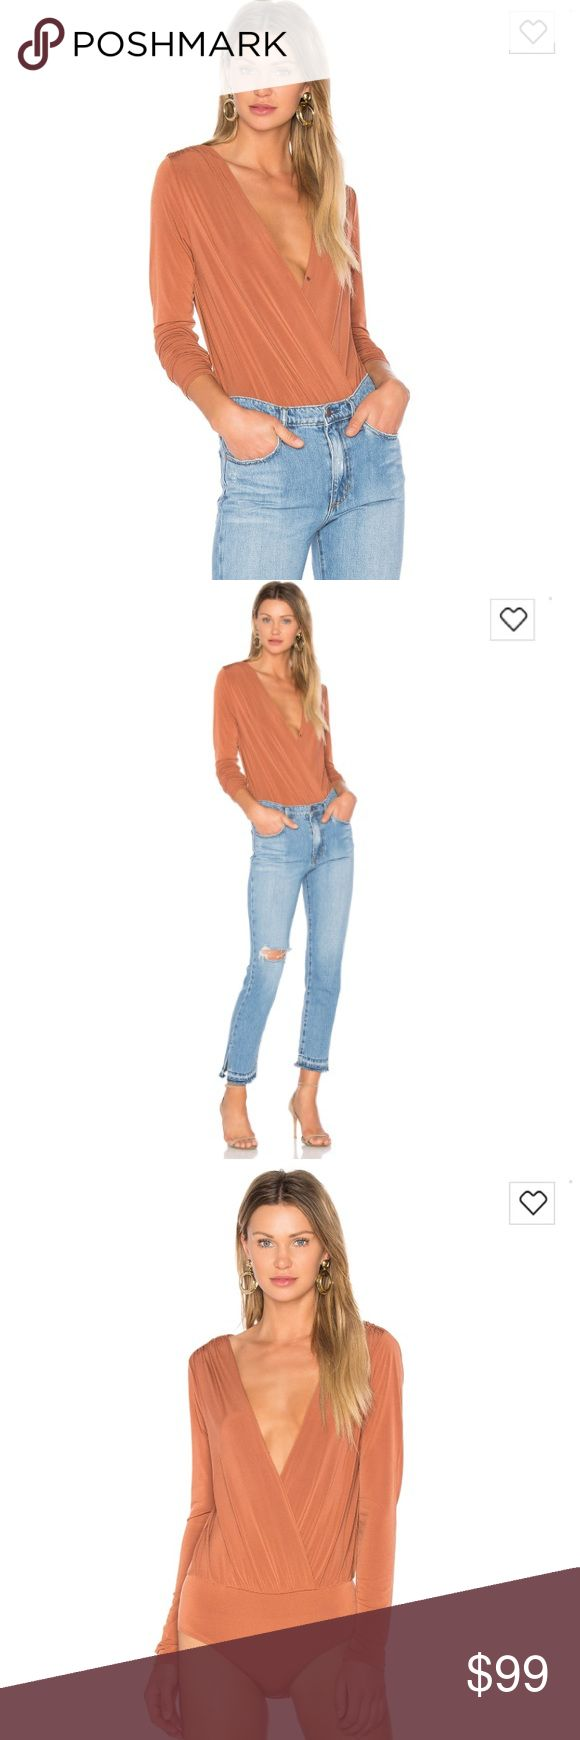 Brand new with tags BCBG deep V bodysuit Gorgeous brand new with tags never been worn. Beautiful orange ish copper tone color. No size listed but fits like a S/M BCBGeneration Tops